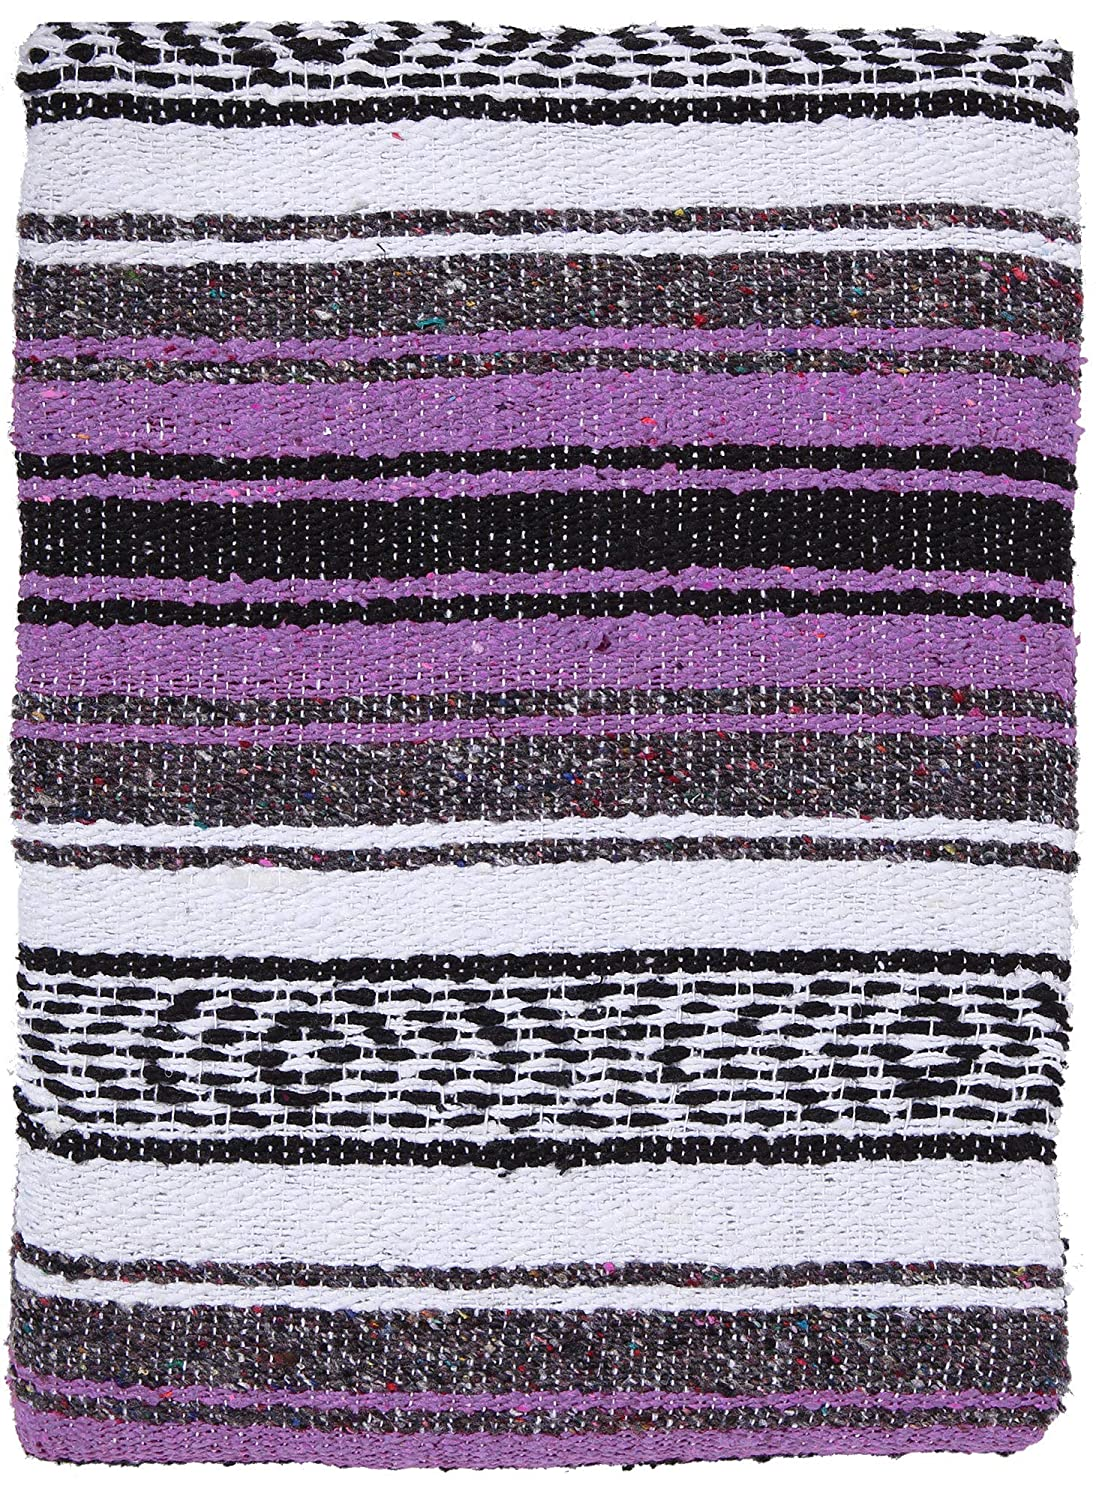 El Paso Designs Mexican Yoga Blanket Colorful 47in x 68in Yoga Studio Mexican Falsa Blanket Ideal for Yoga, Camping, Picnicking, Beach Blanket, Bedding, Home Decor Soft Woven Serape (Lavender)